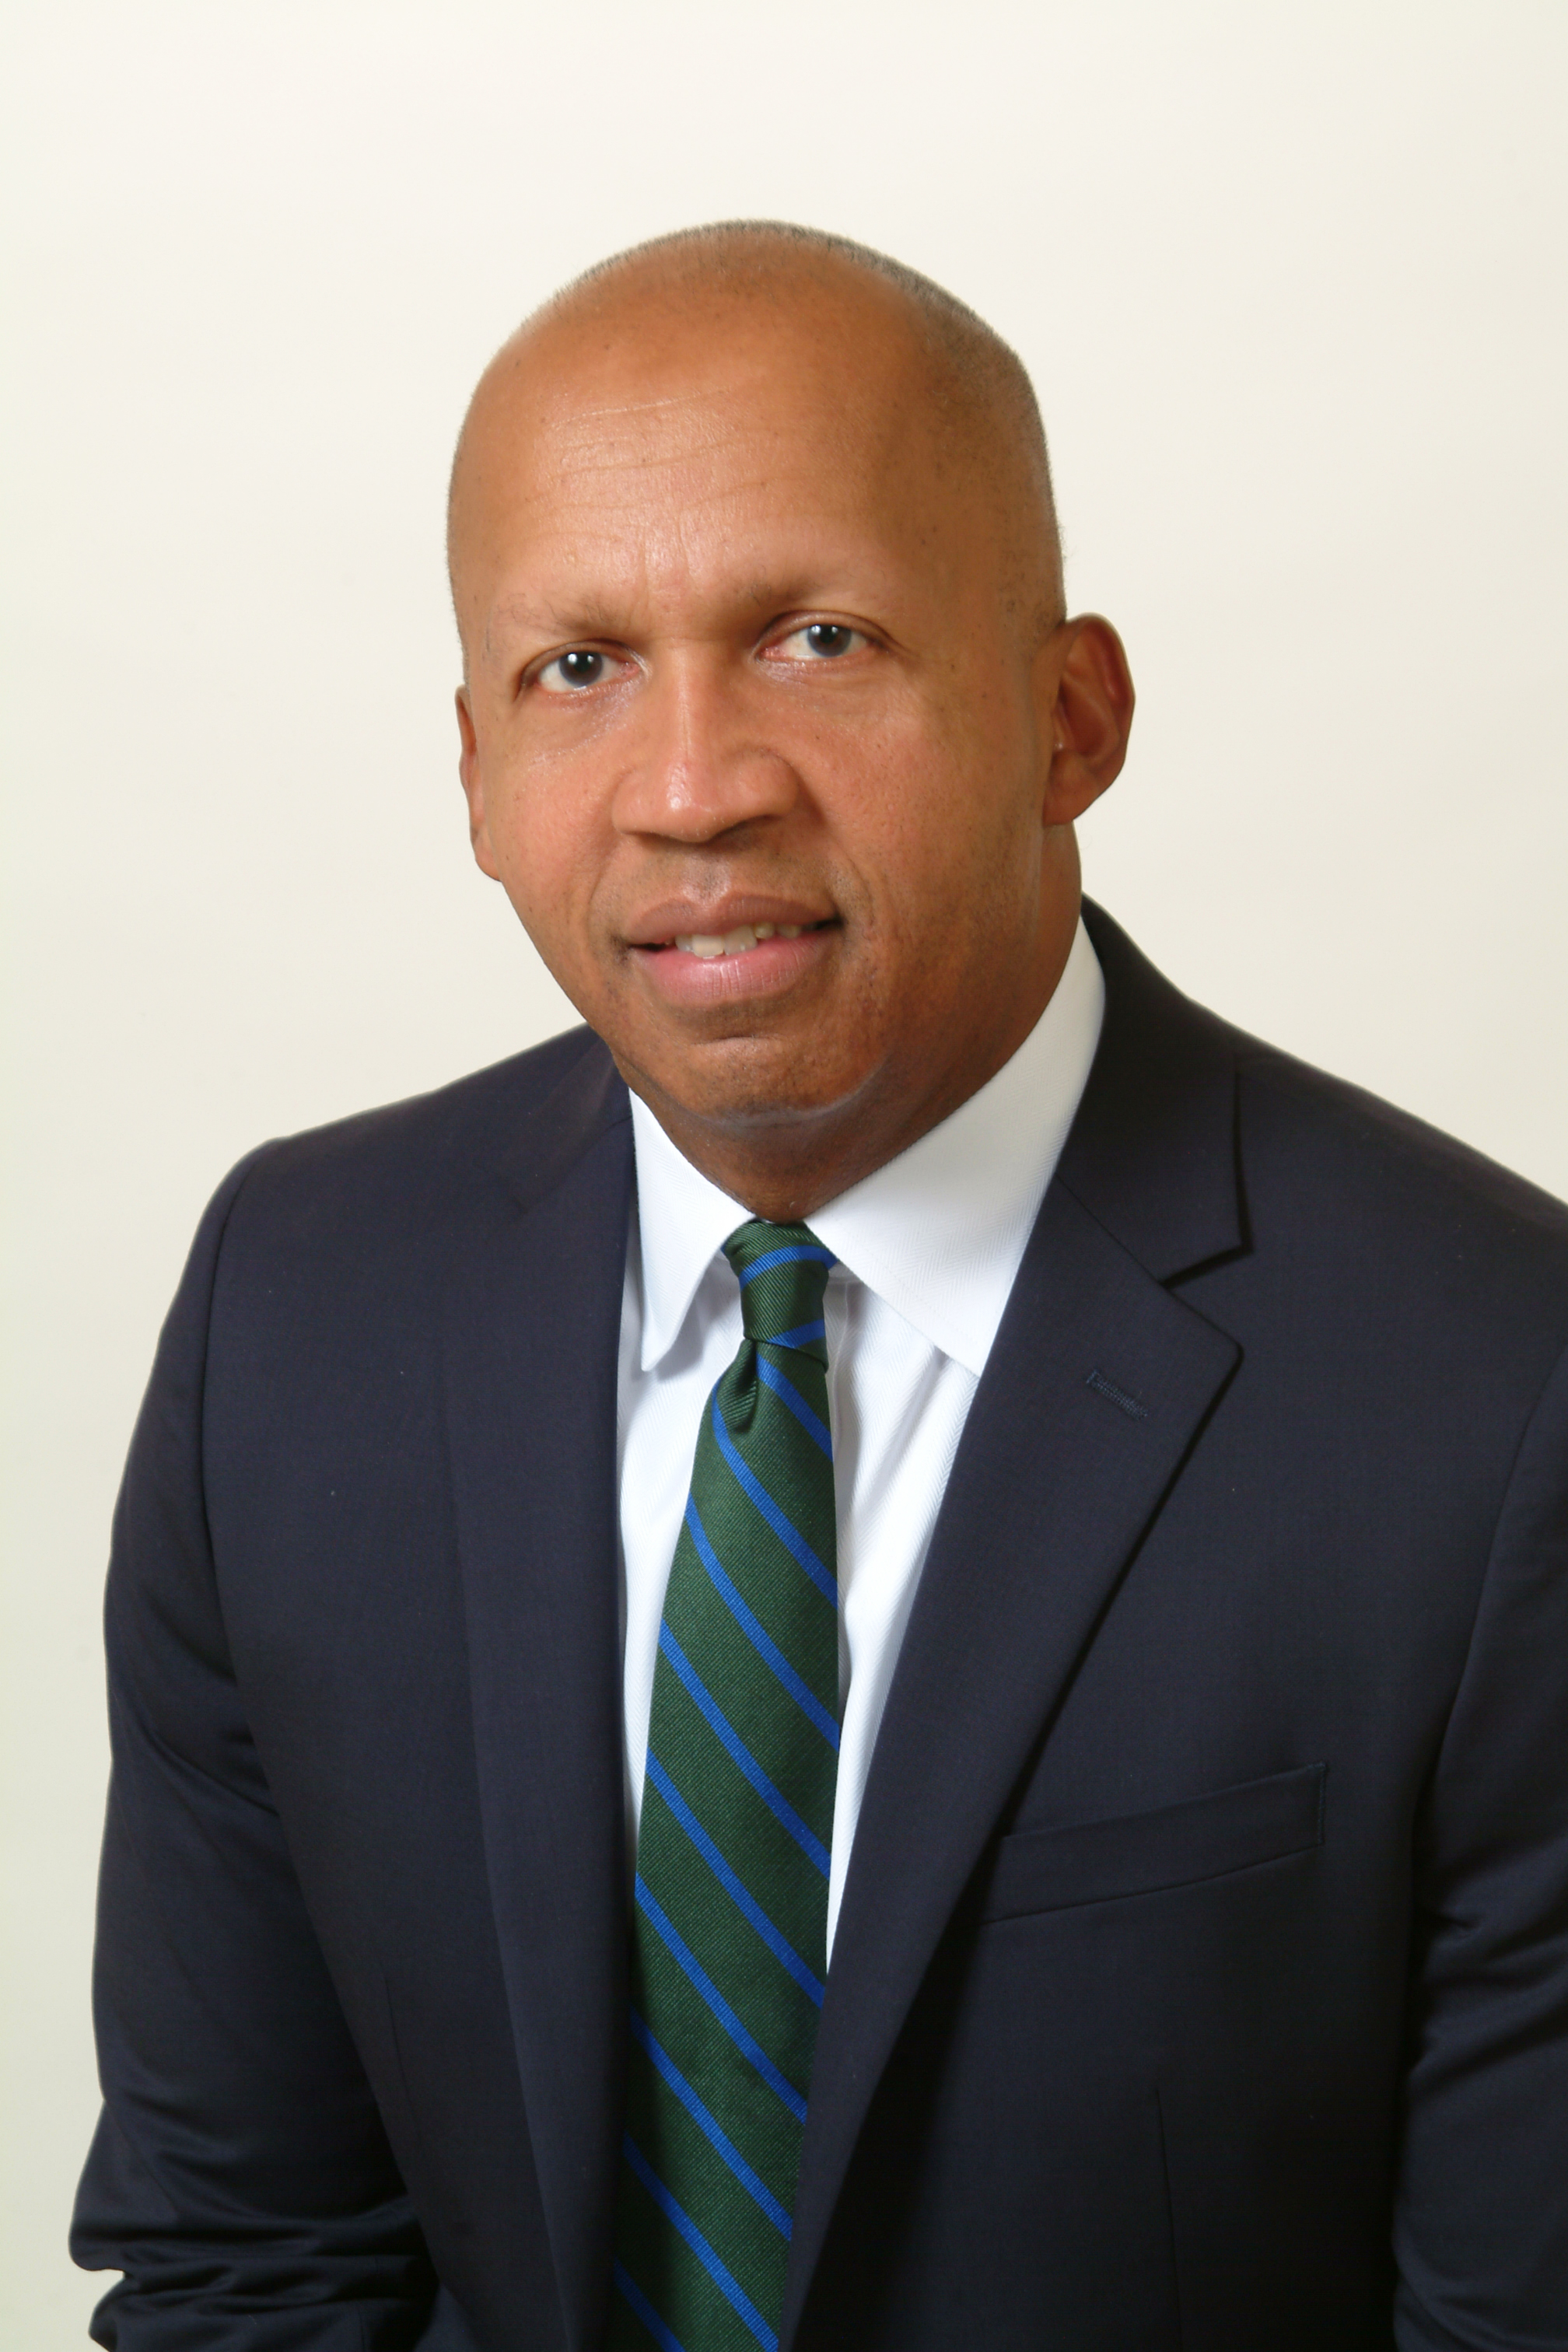 Bryan Stevenson, a public interest lawyer and advocate for ending mass incarceration, will speak at the combined ceremony for the College of Liberal Arts and Social Sciences and the School for New Learning and will receive an honorary degree. (Photo by Paul Robertson)